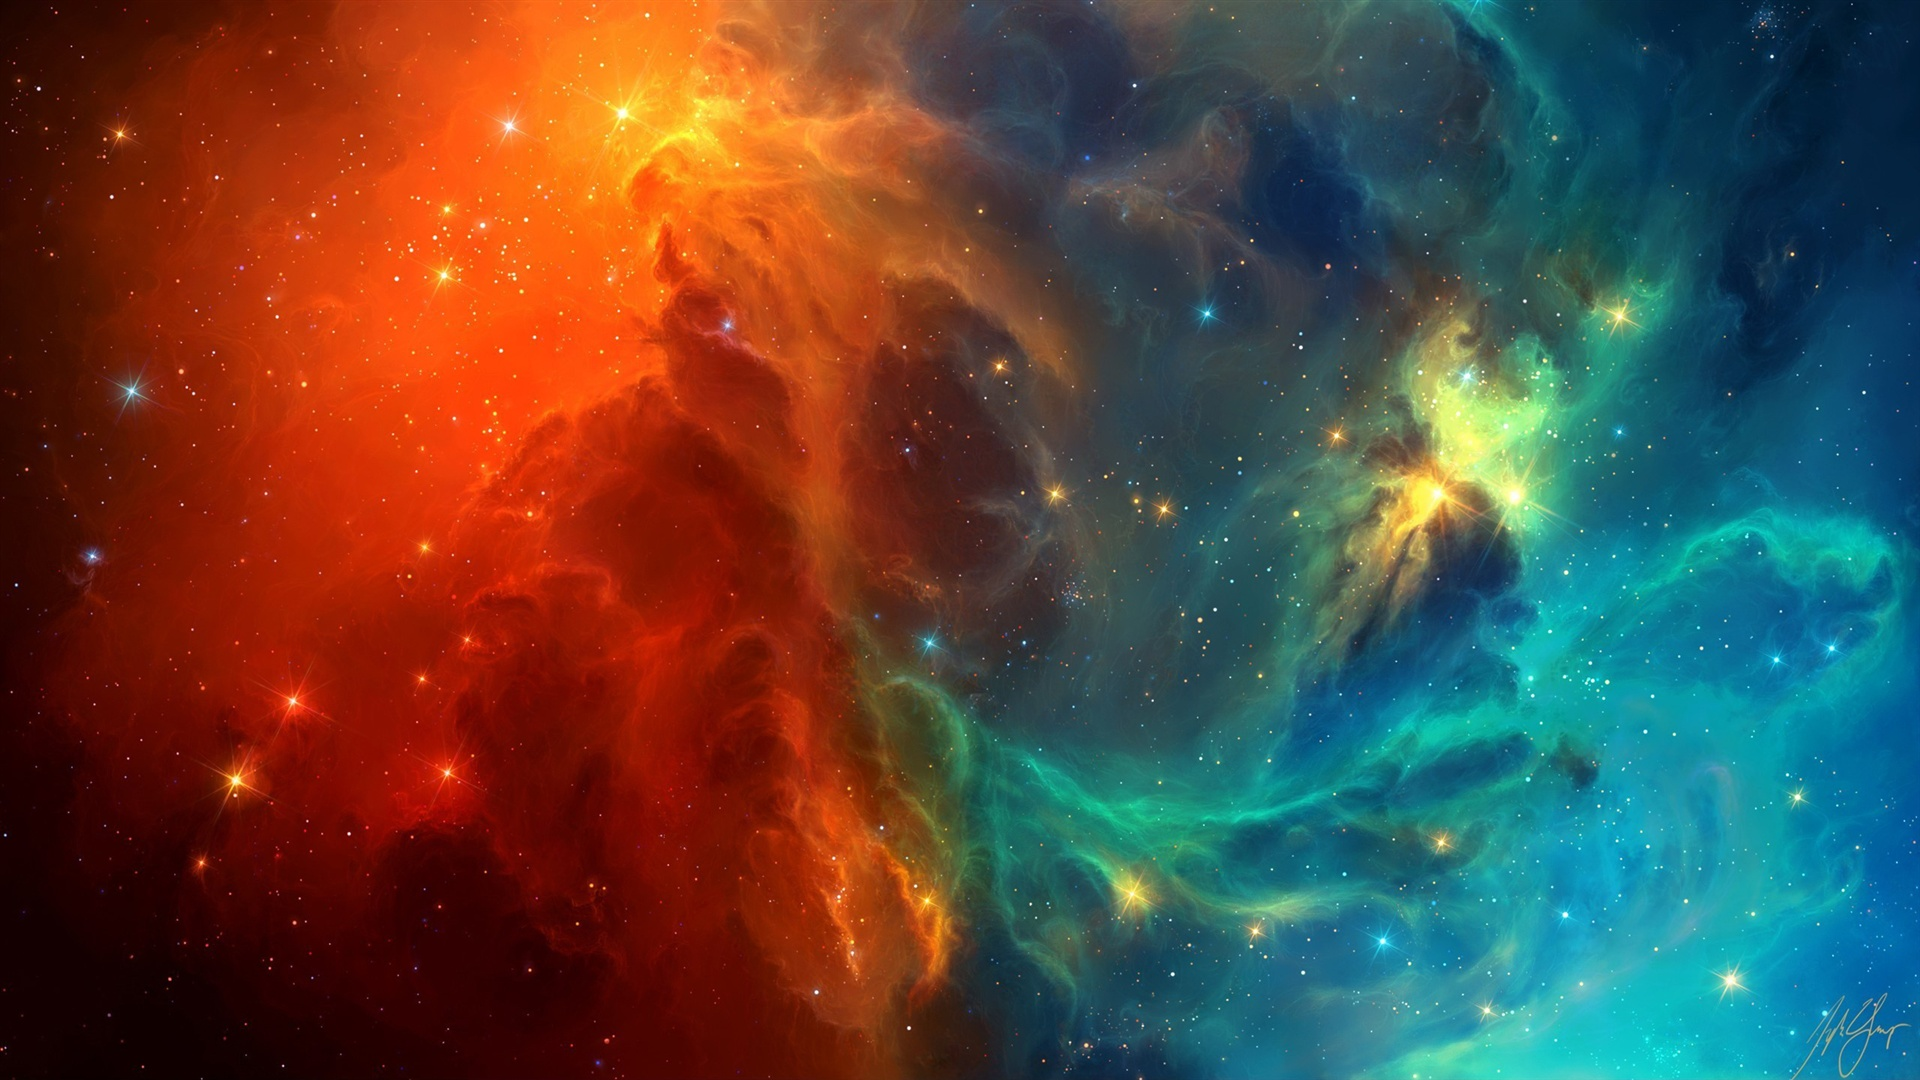 Download Wallpaper 1920x1080 Space nebula, blue and red ...